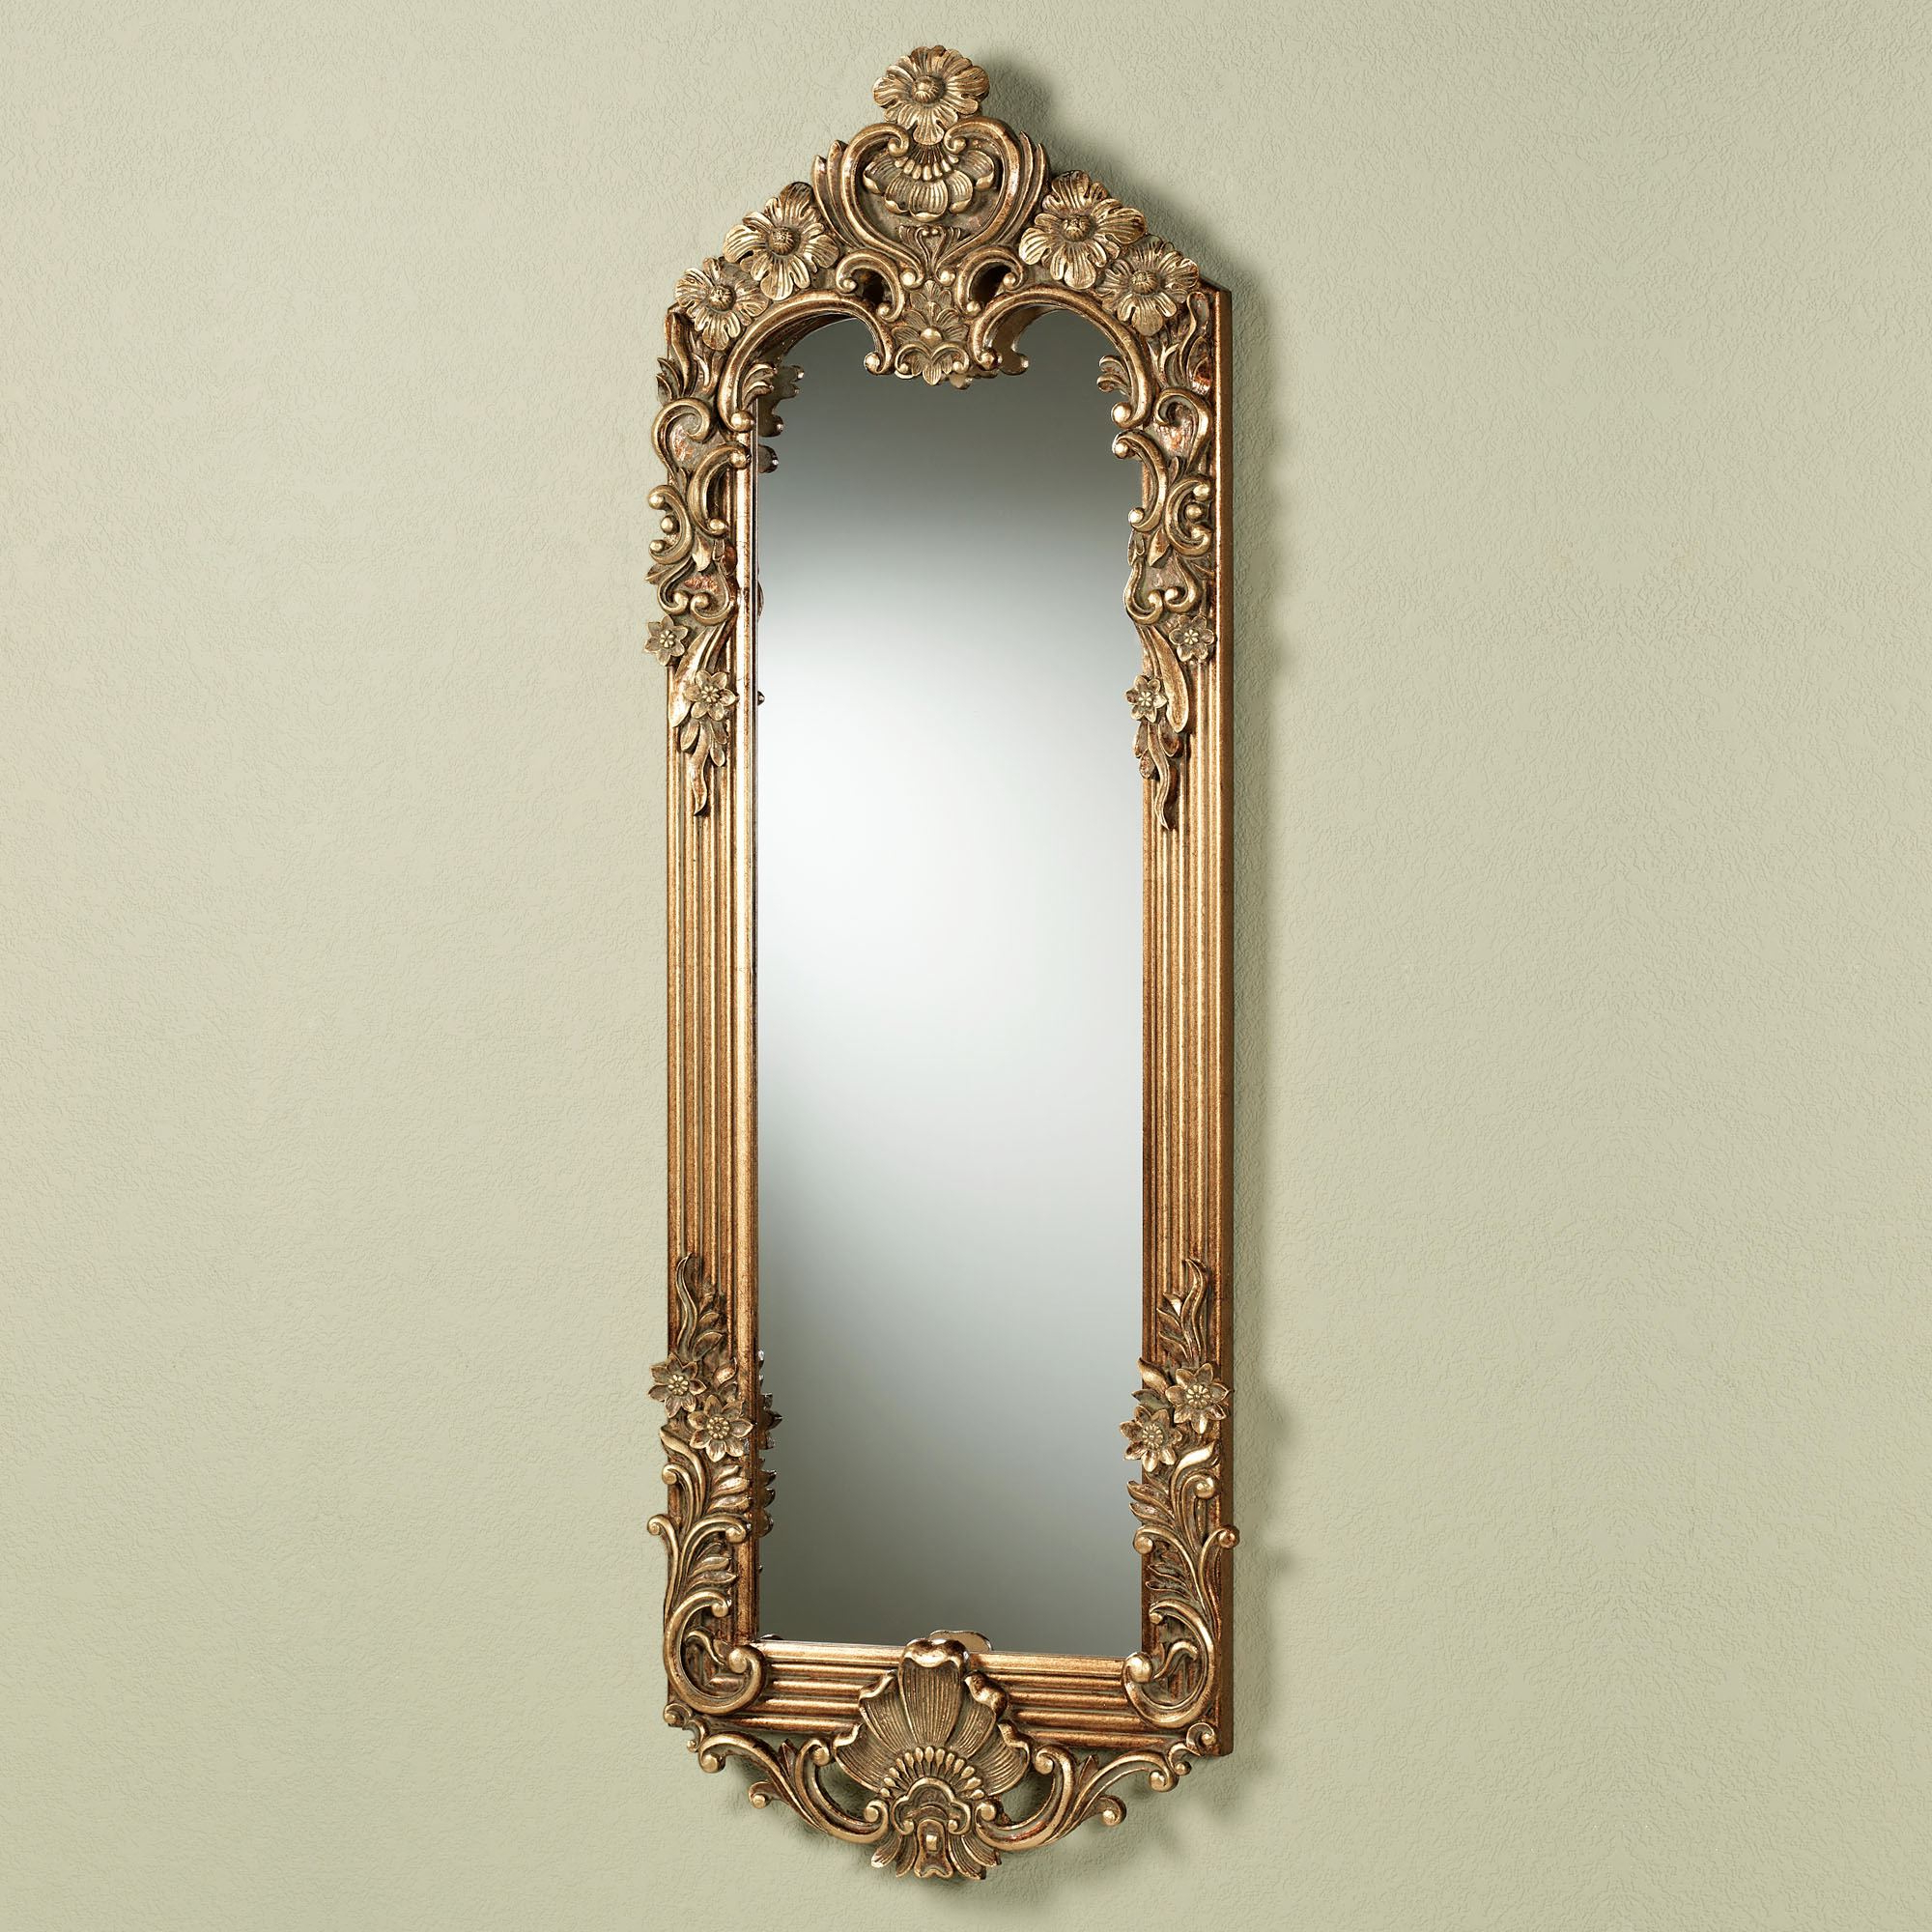 Newest Large Elegant Wall Mirrors With Regard To Gadsden Dark Gold Large Floral Wall Mirror Panel (View 15 of 20)